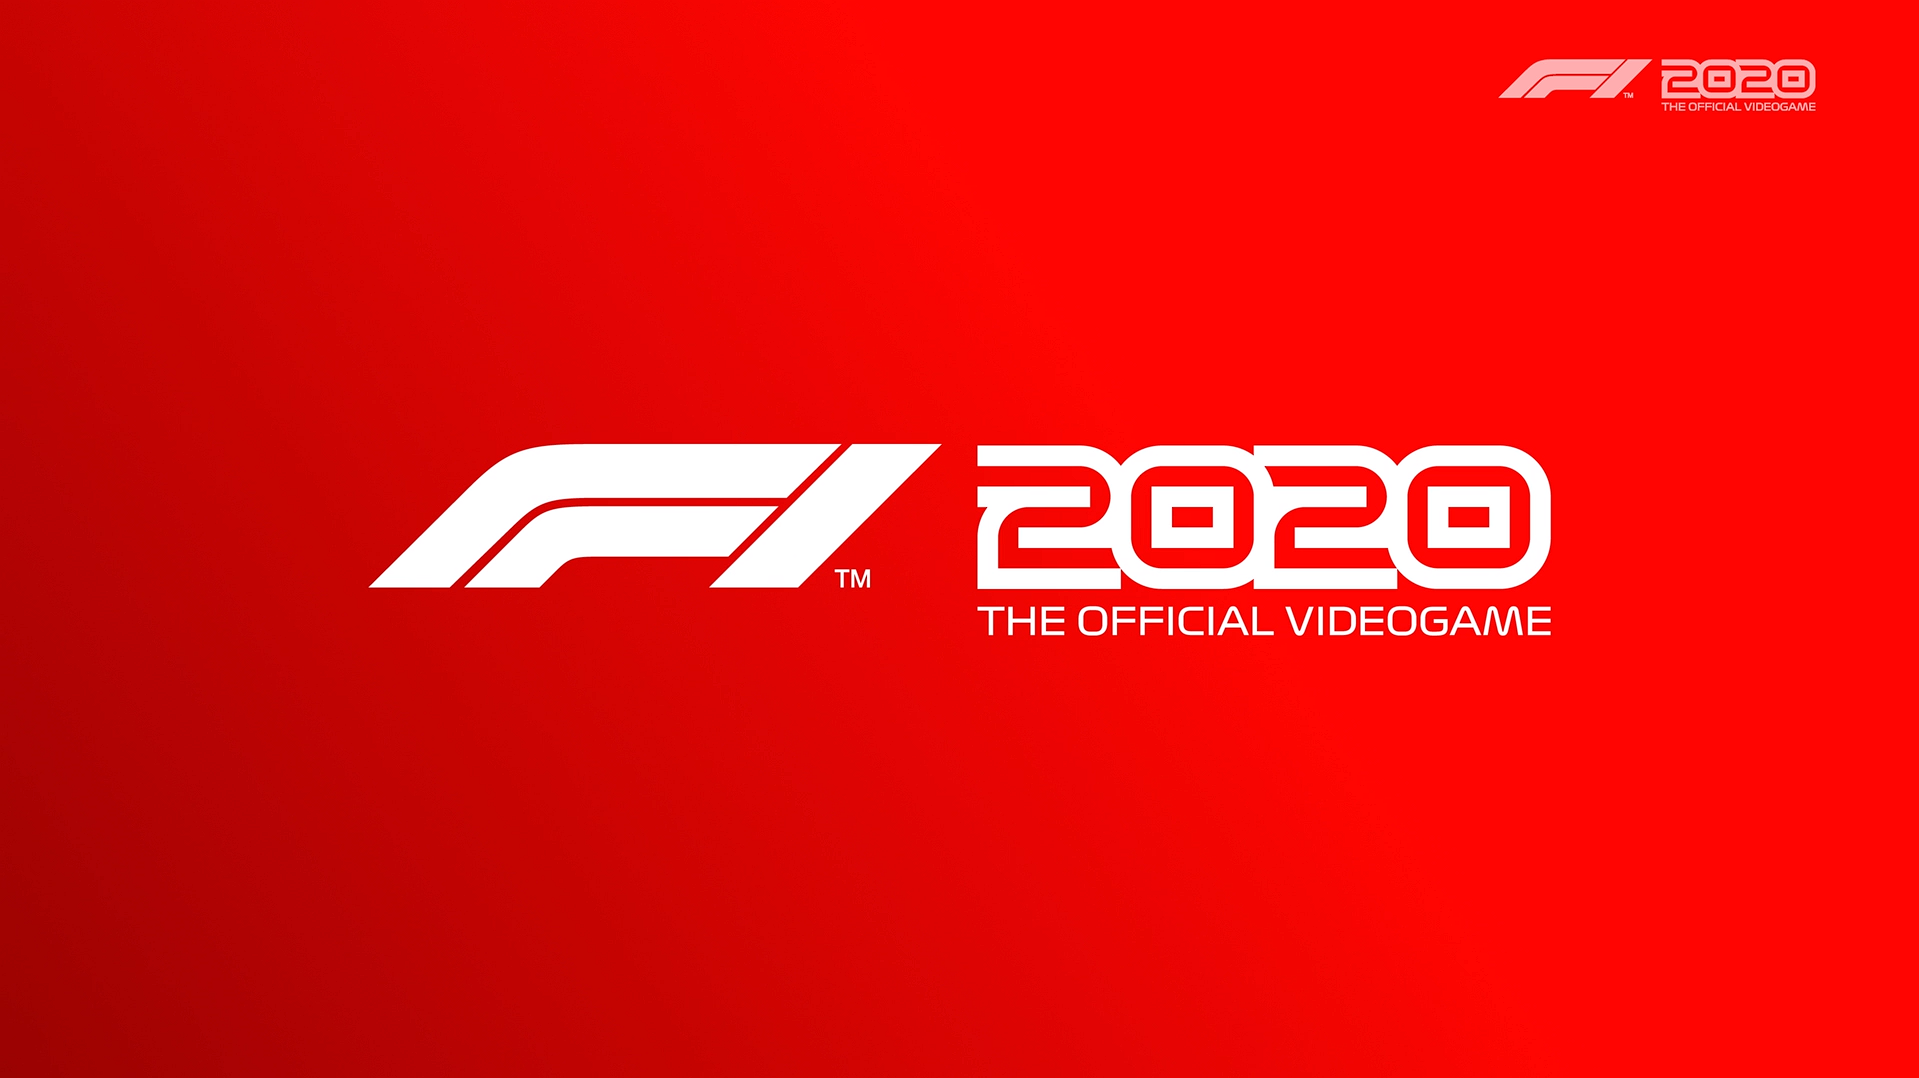 F1 2020 Shows Off New Features In Latest Trailer Informed Pixel